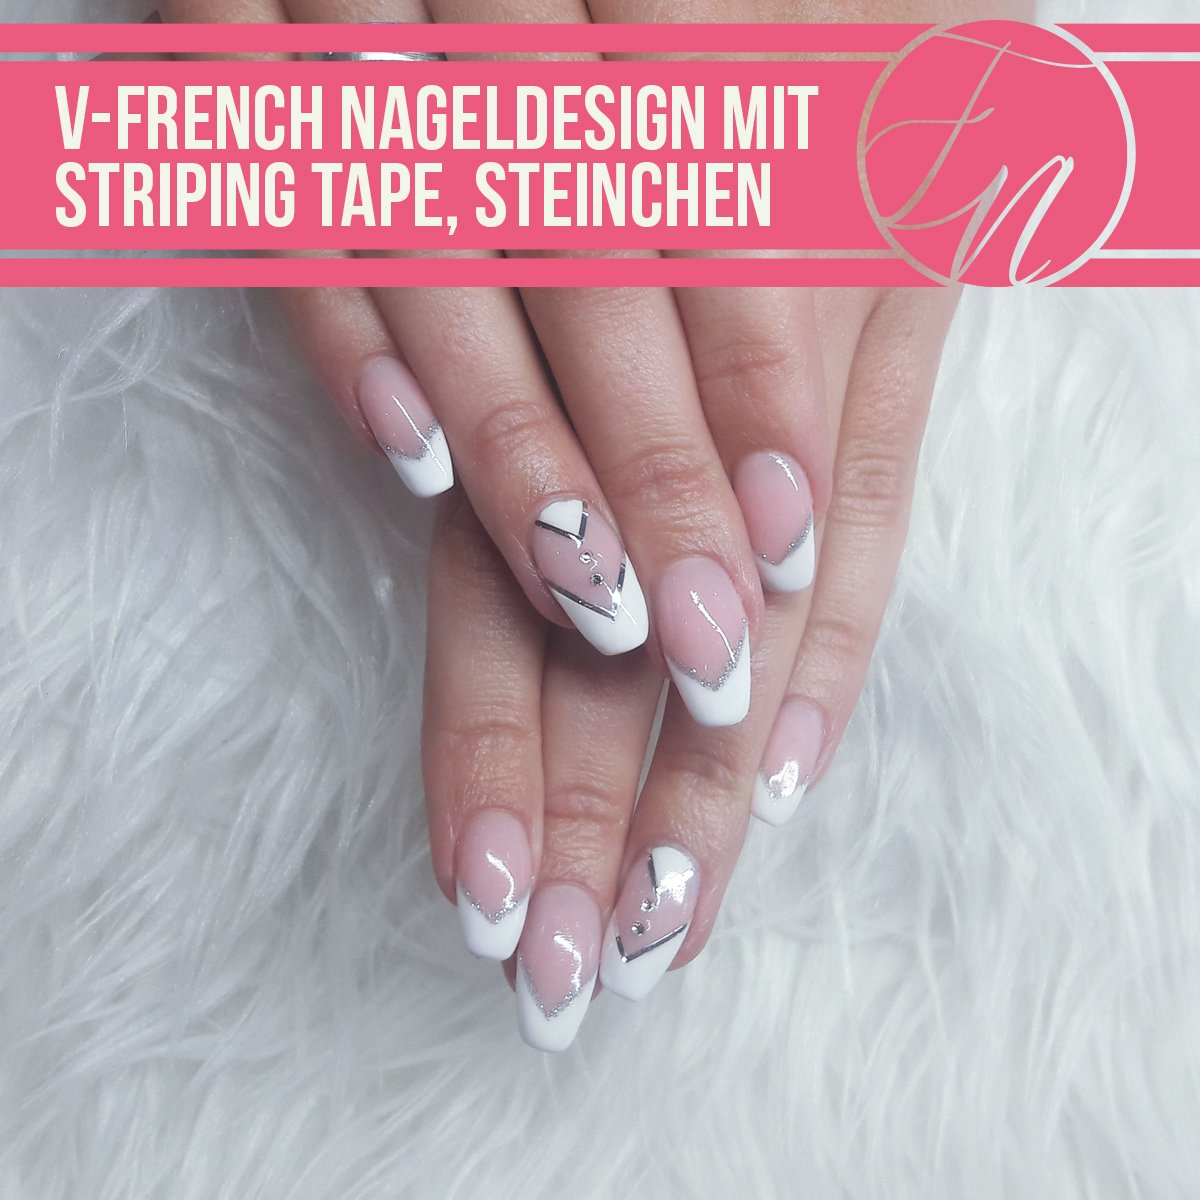 Weißes Nageldesign Nageldesign French Trendy Ihr Nagelstudio On Twitter Danke Julia